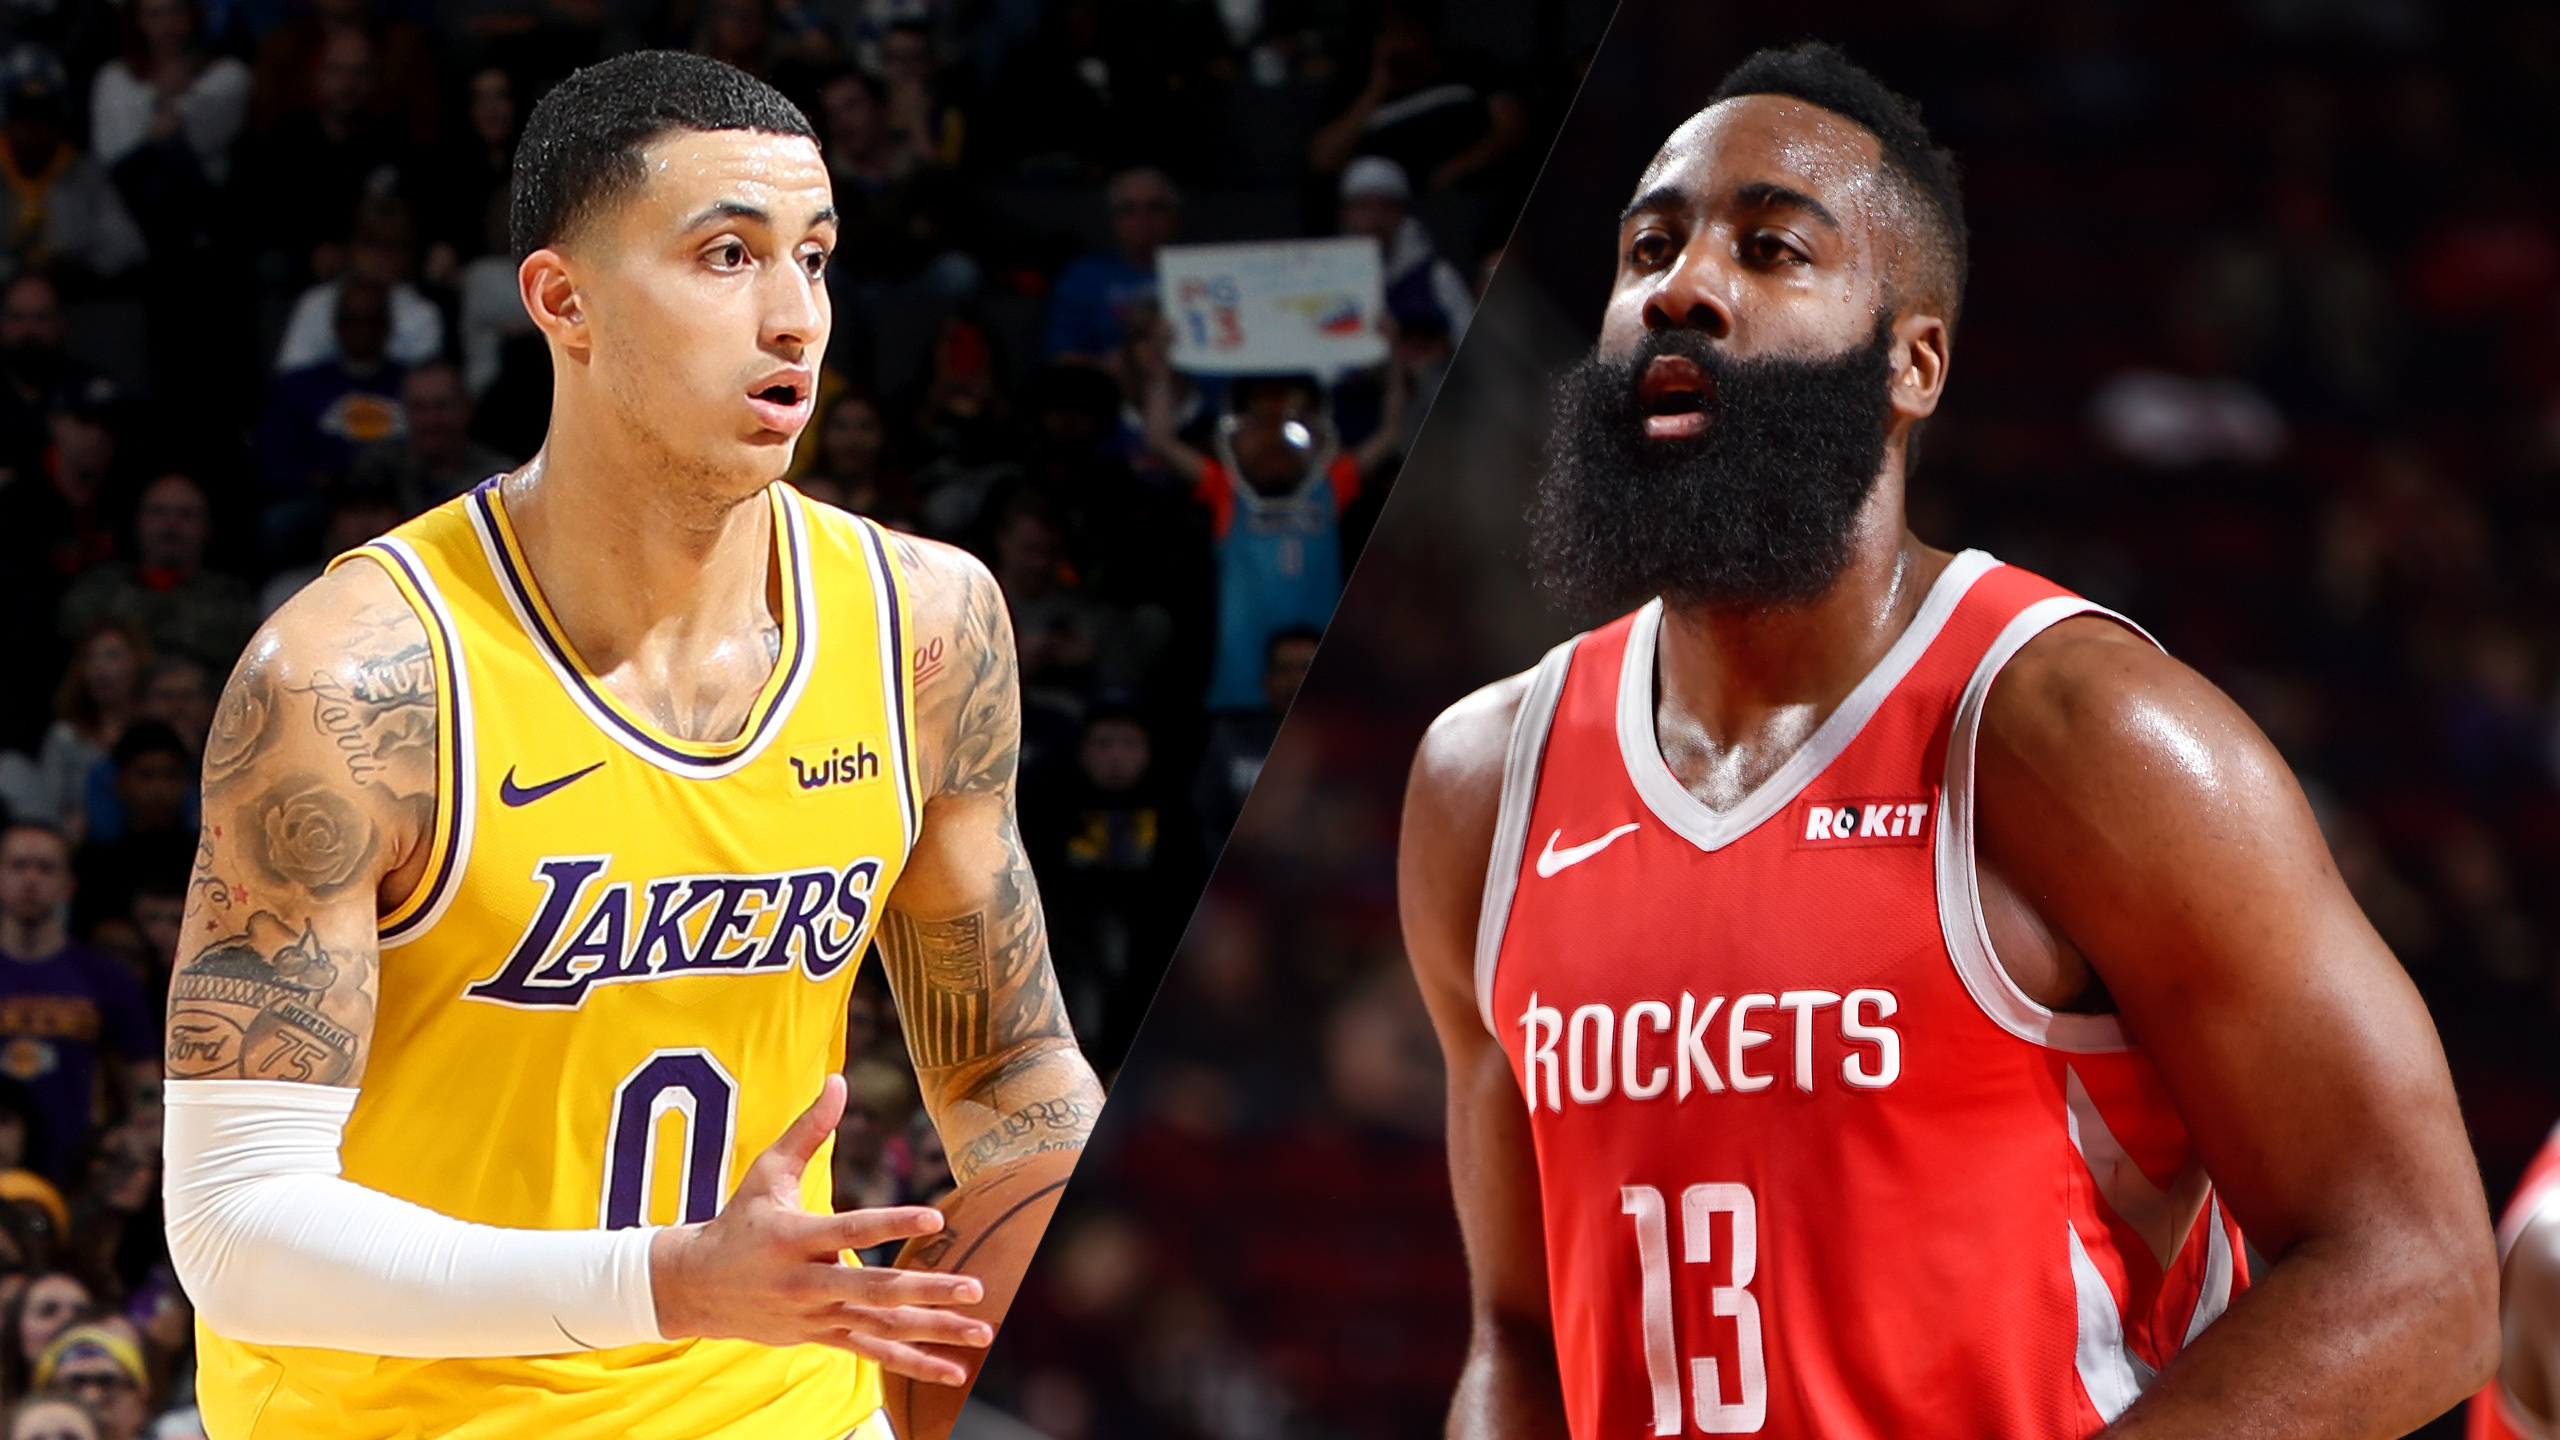 Los Angeles Lakers vs. Houston Rockets (re-air)